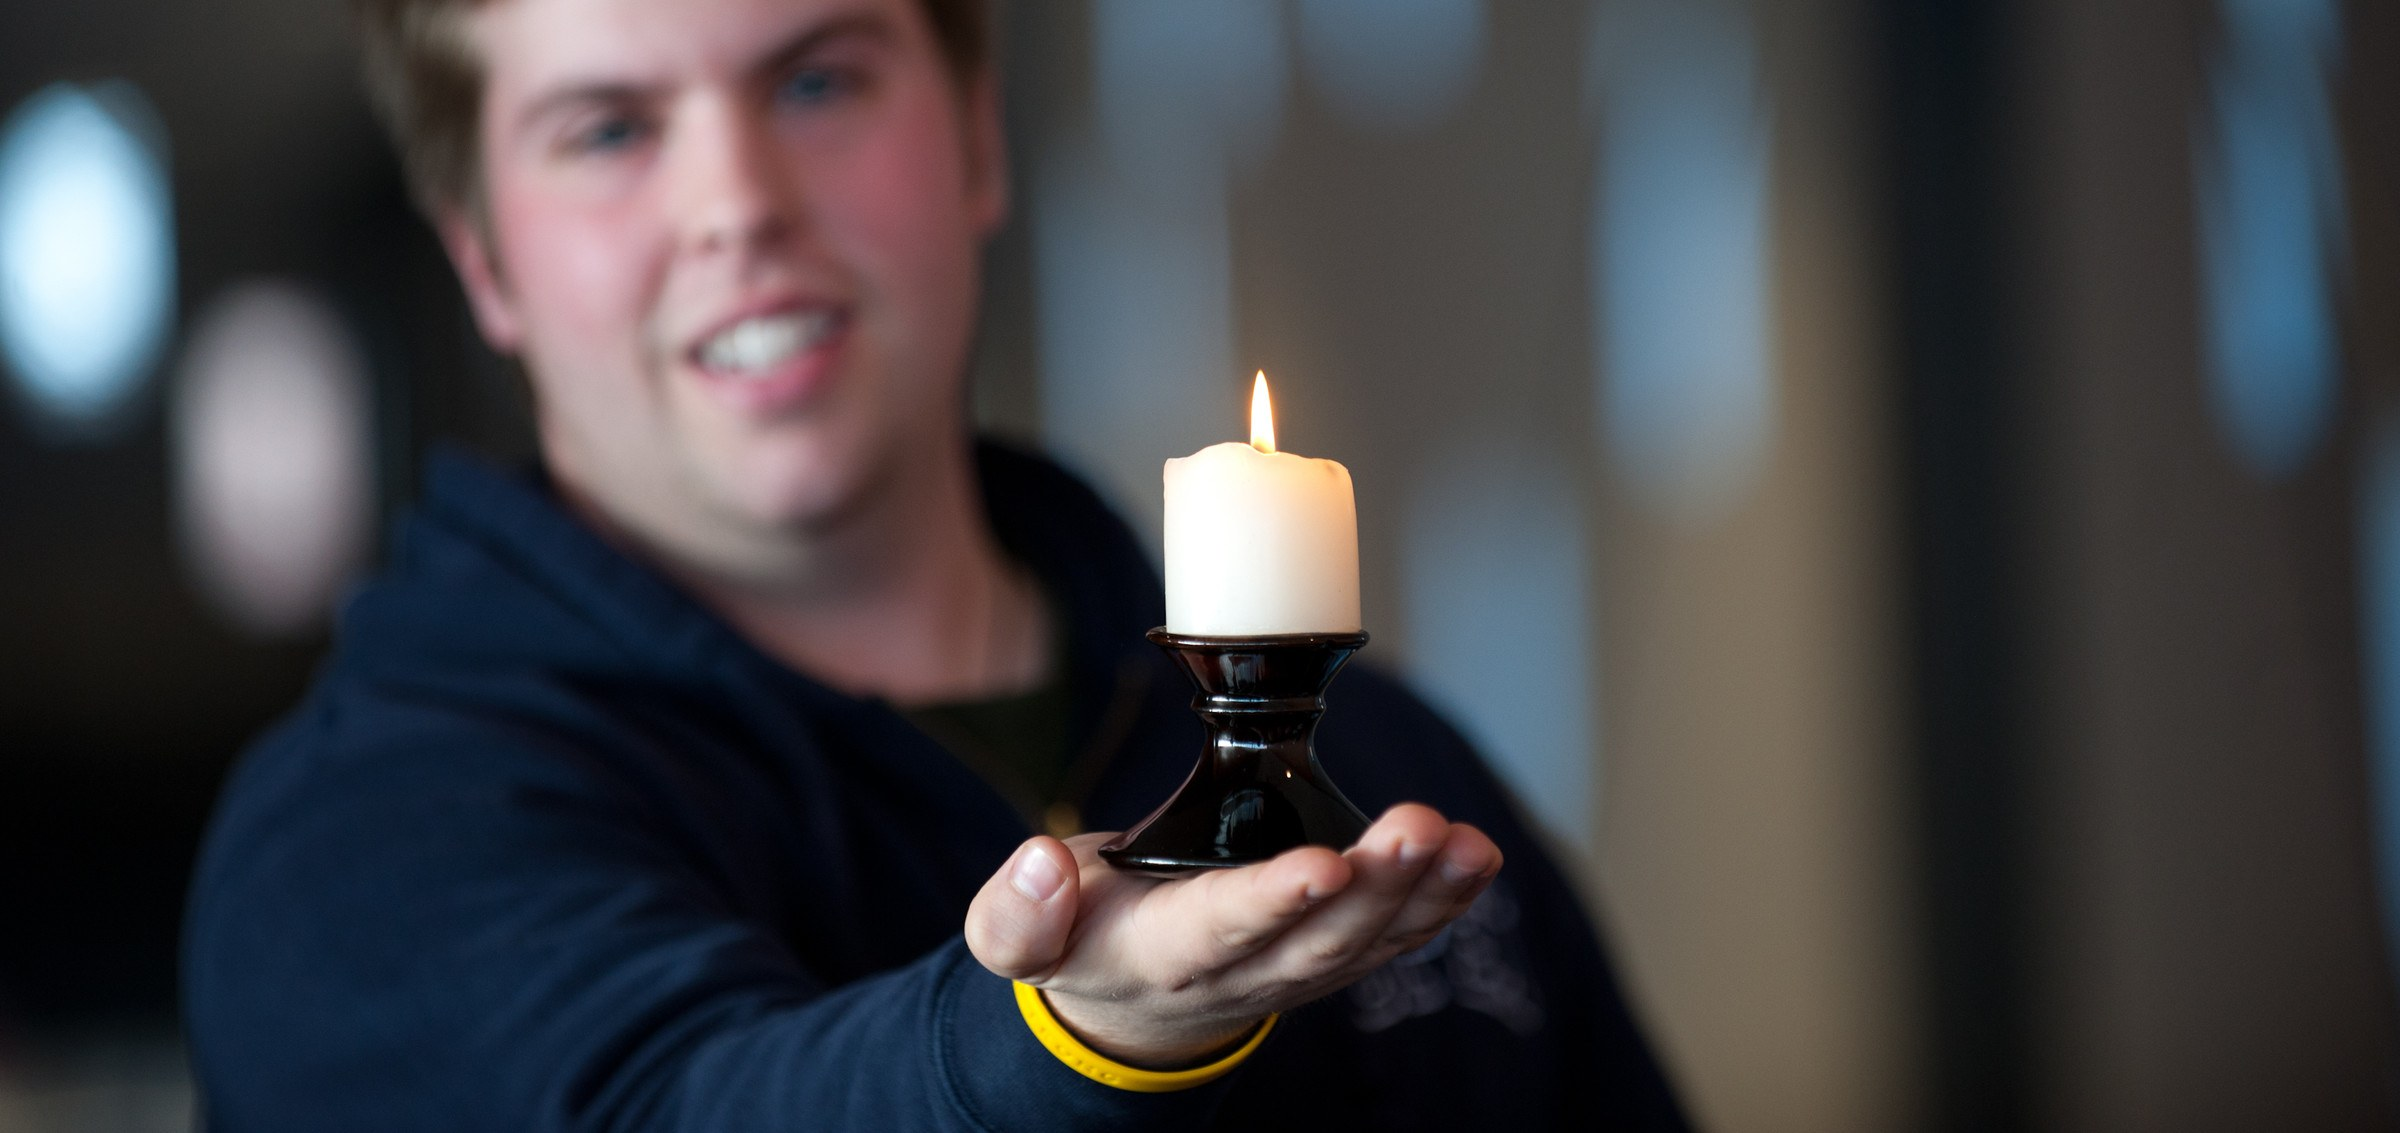 A student holds a candle